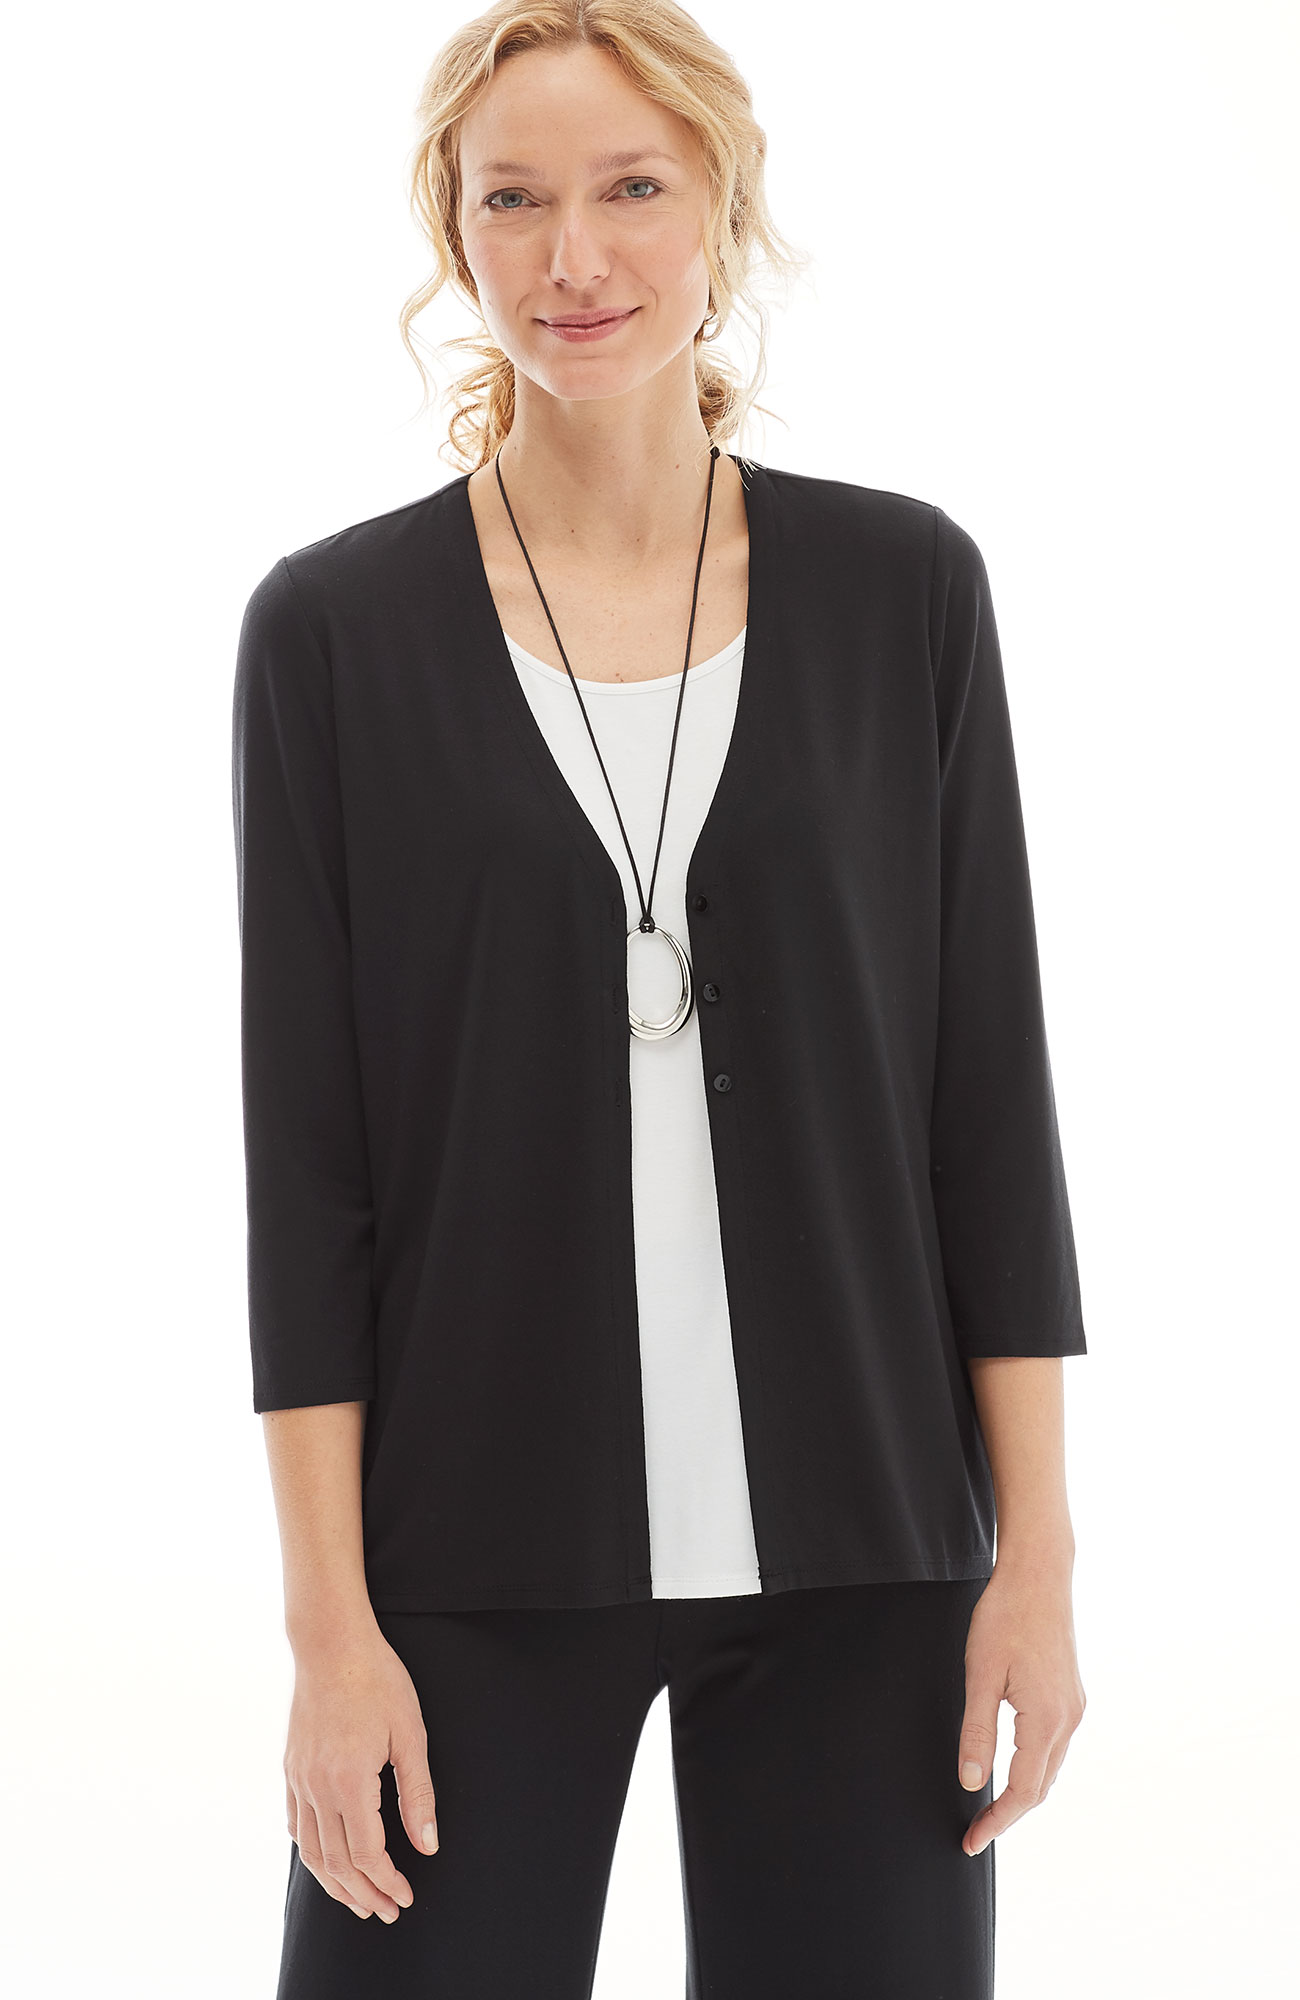 Wearever V-neck jacket